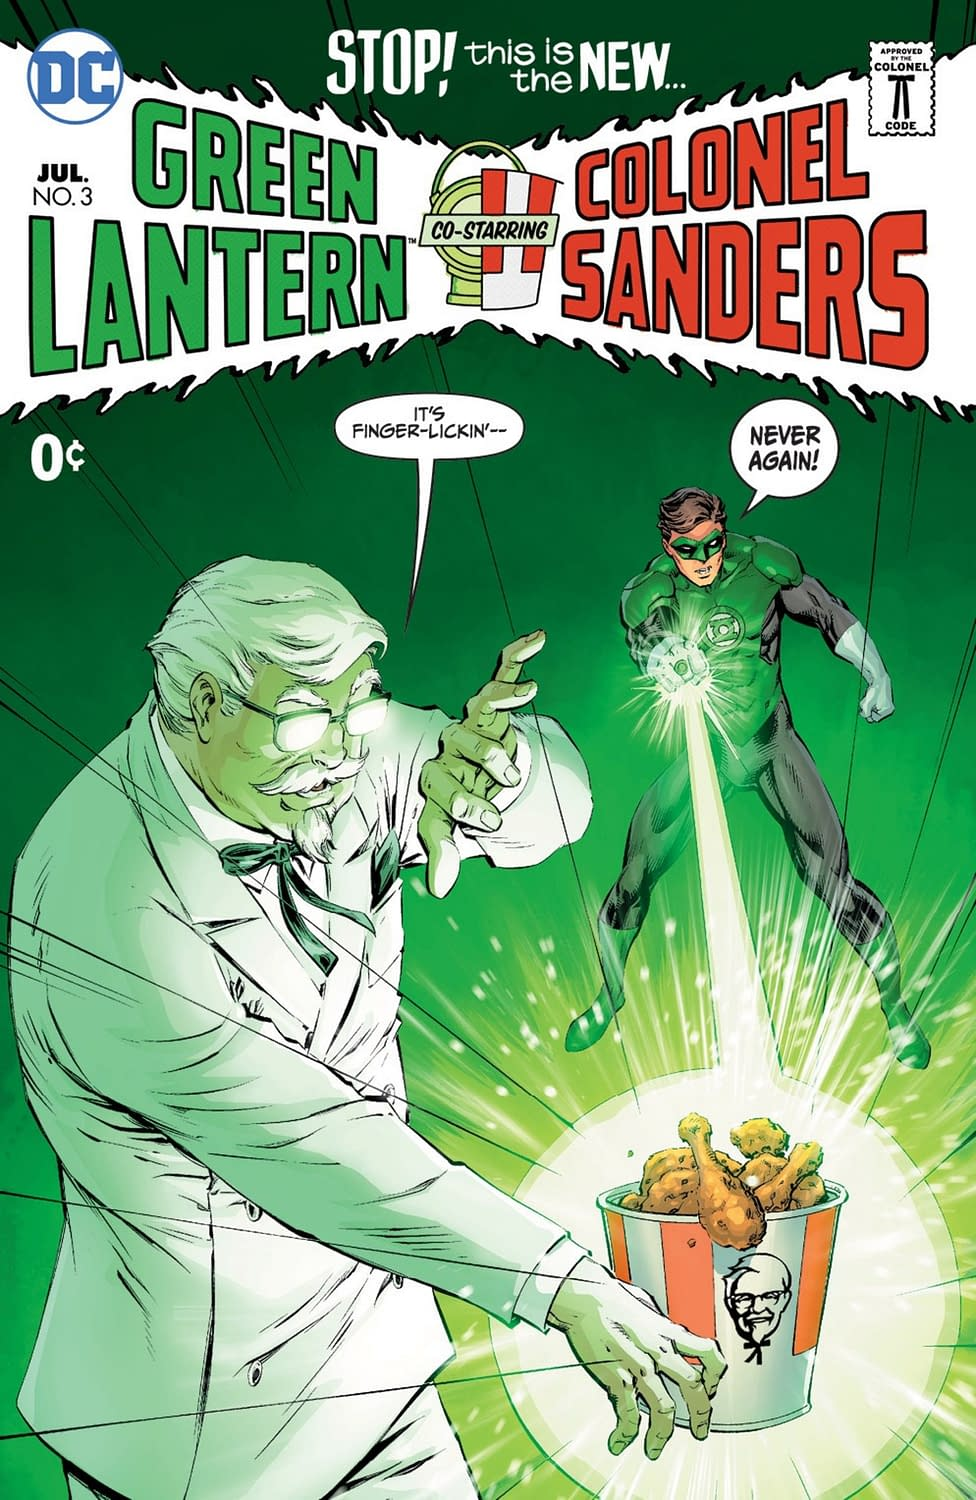 KFC And DC Comics Team Up For SDCC Exclusive Third Crossover From Tony Bedard And Tom Derenick